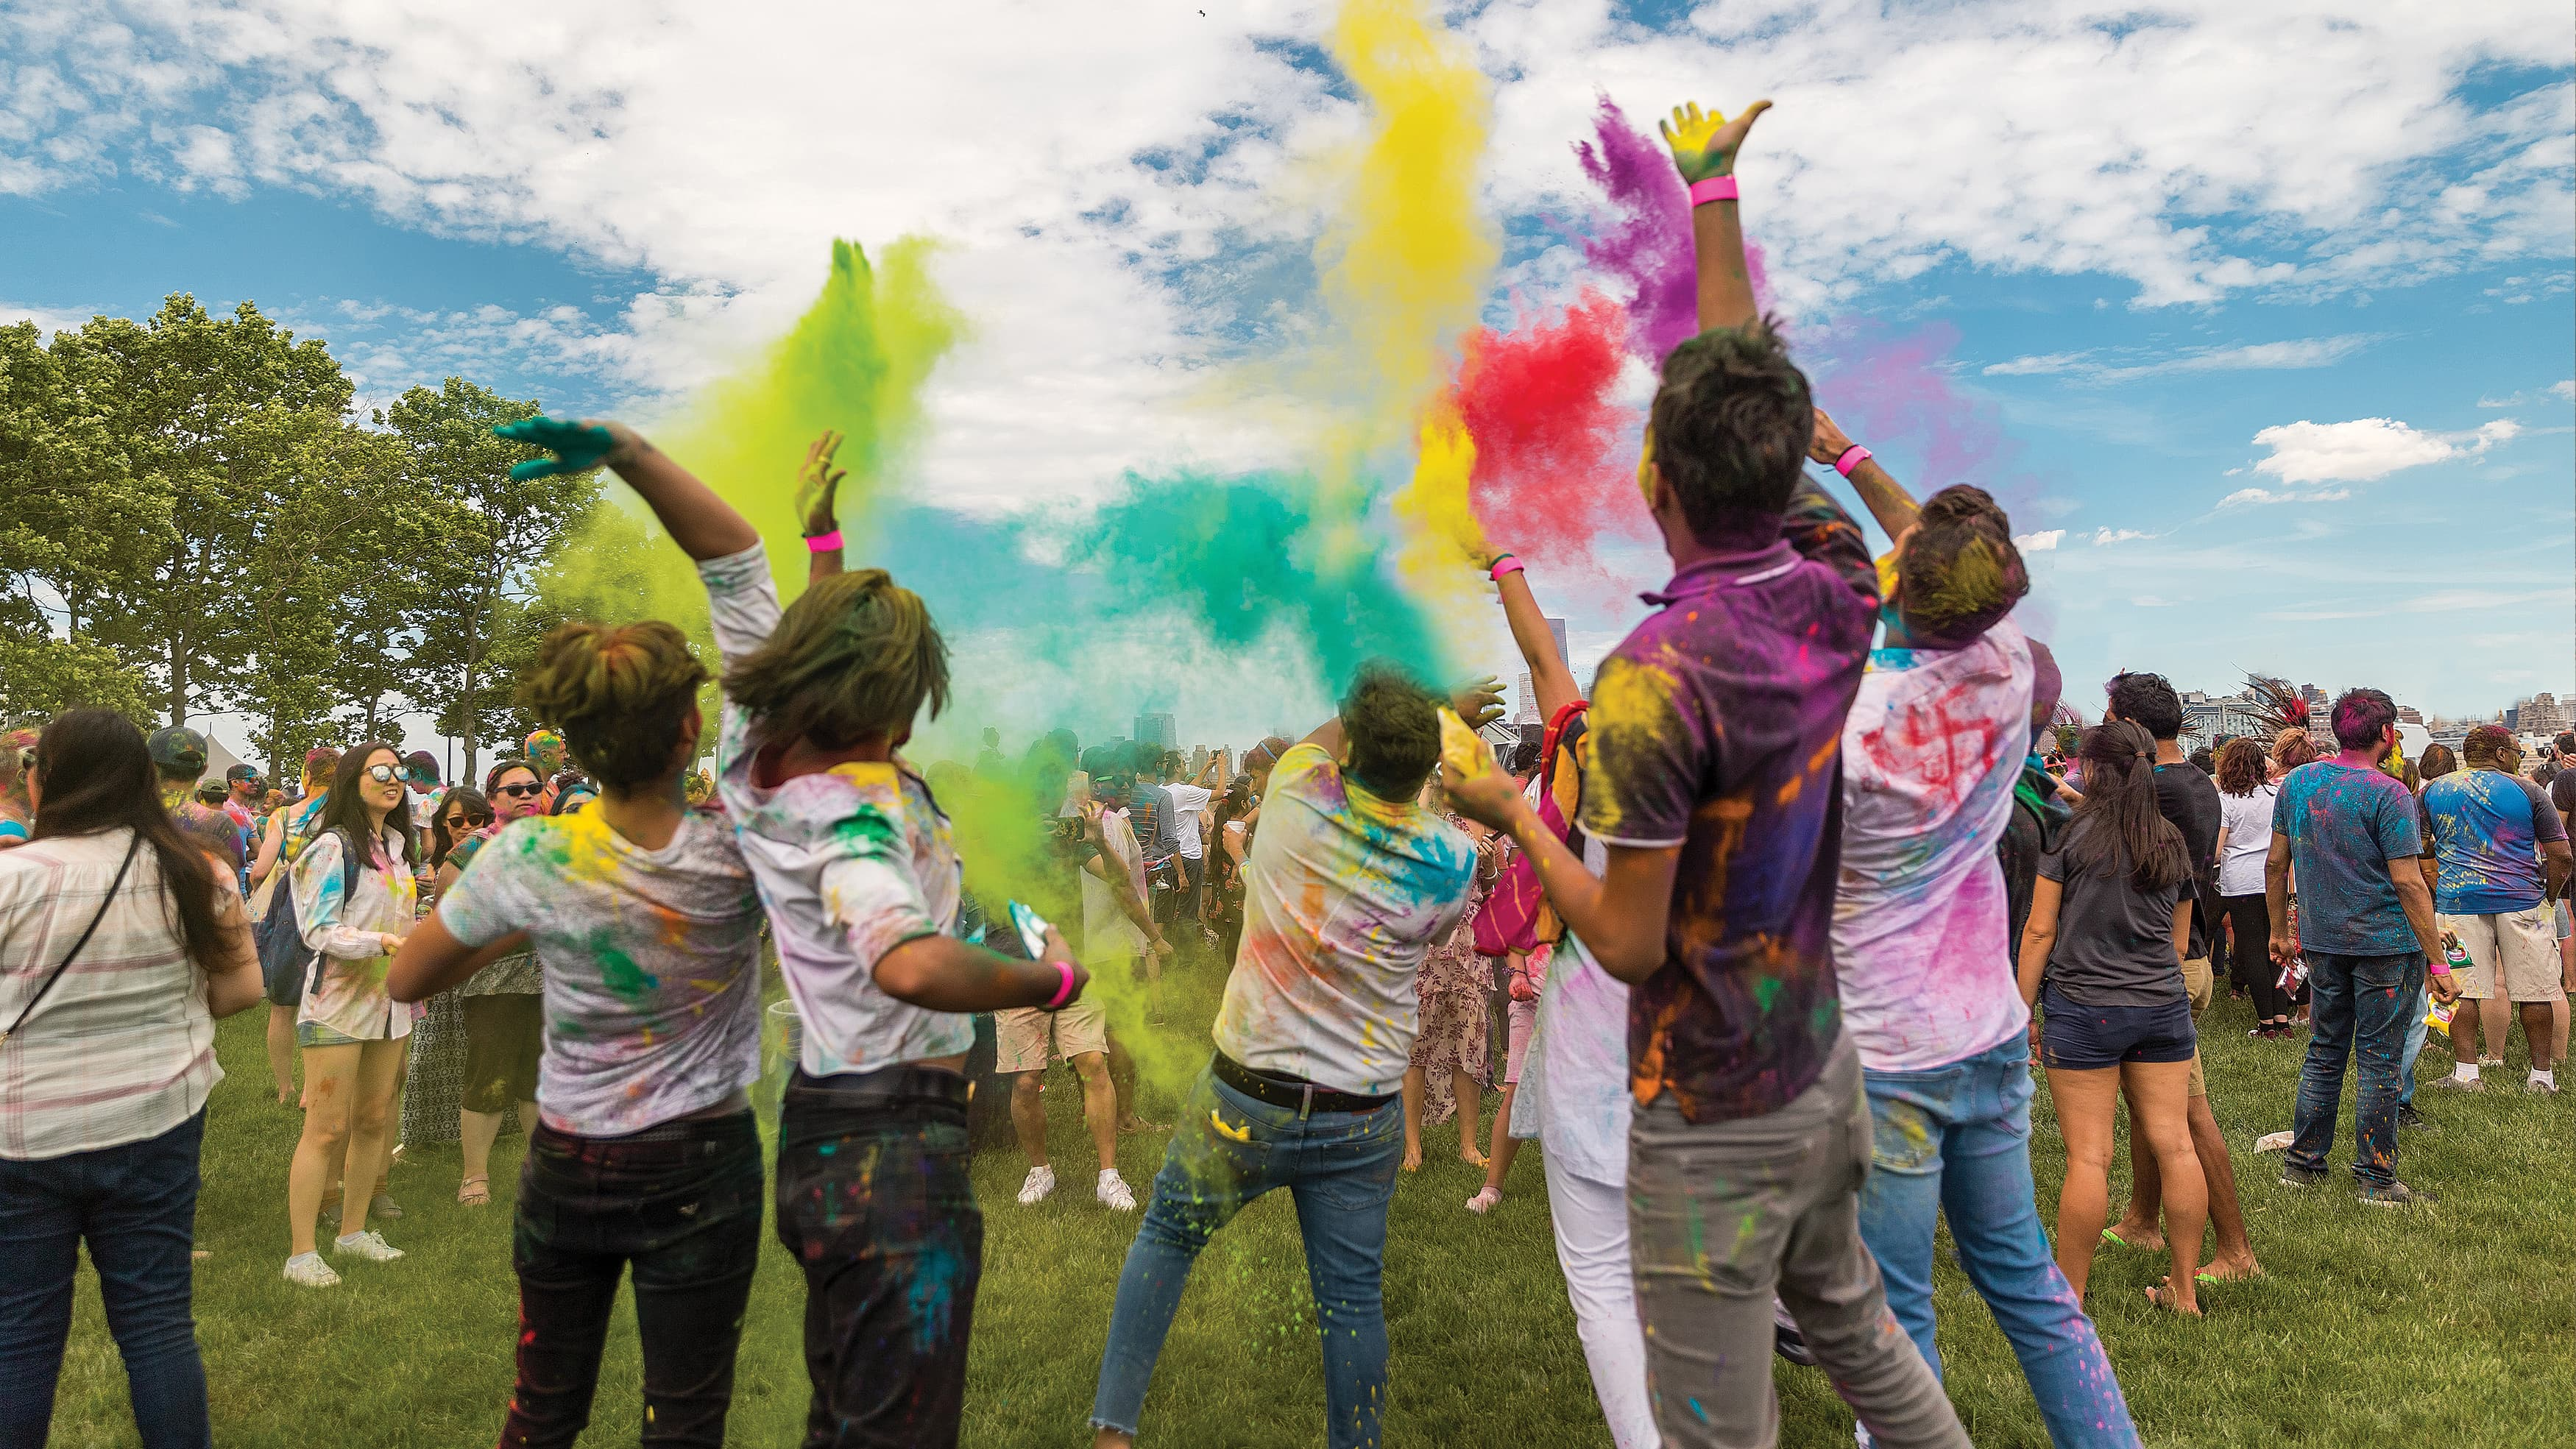 A group of people throwing colored chalk into the air at a park.